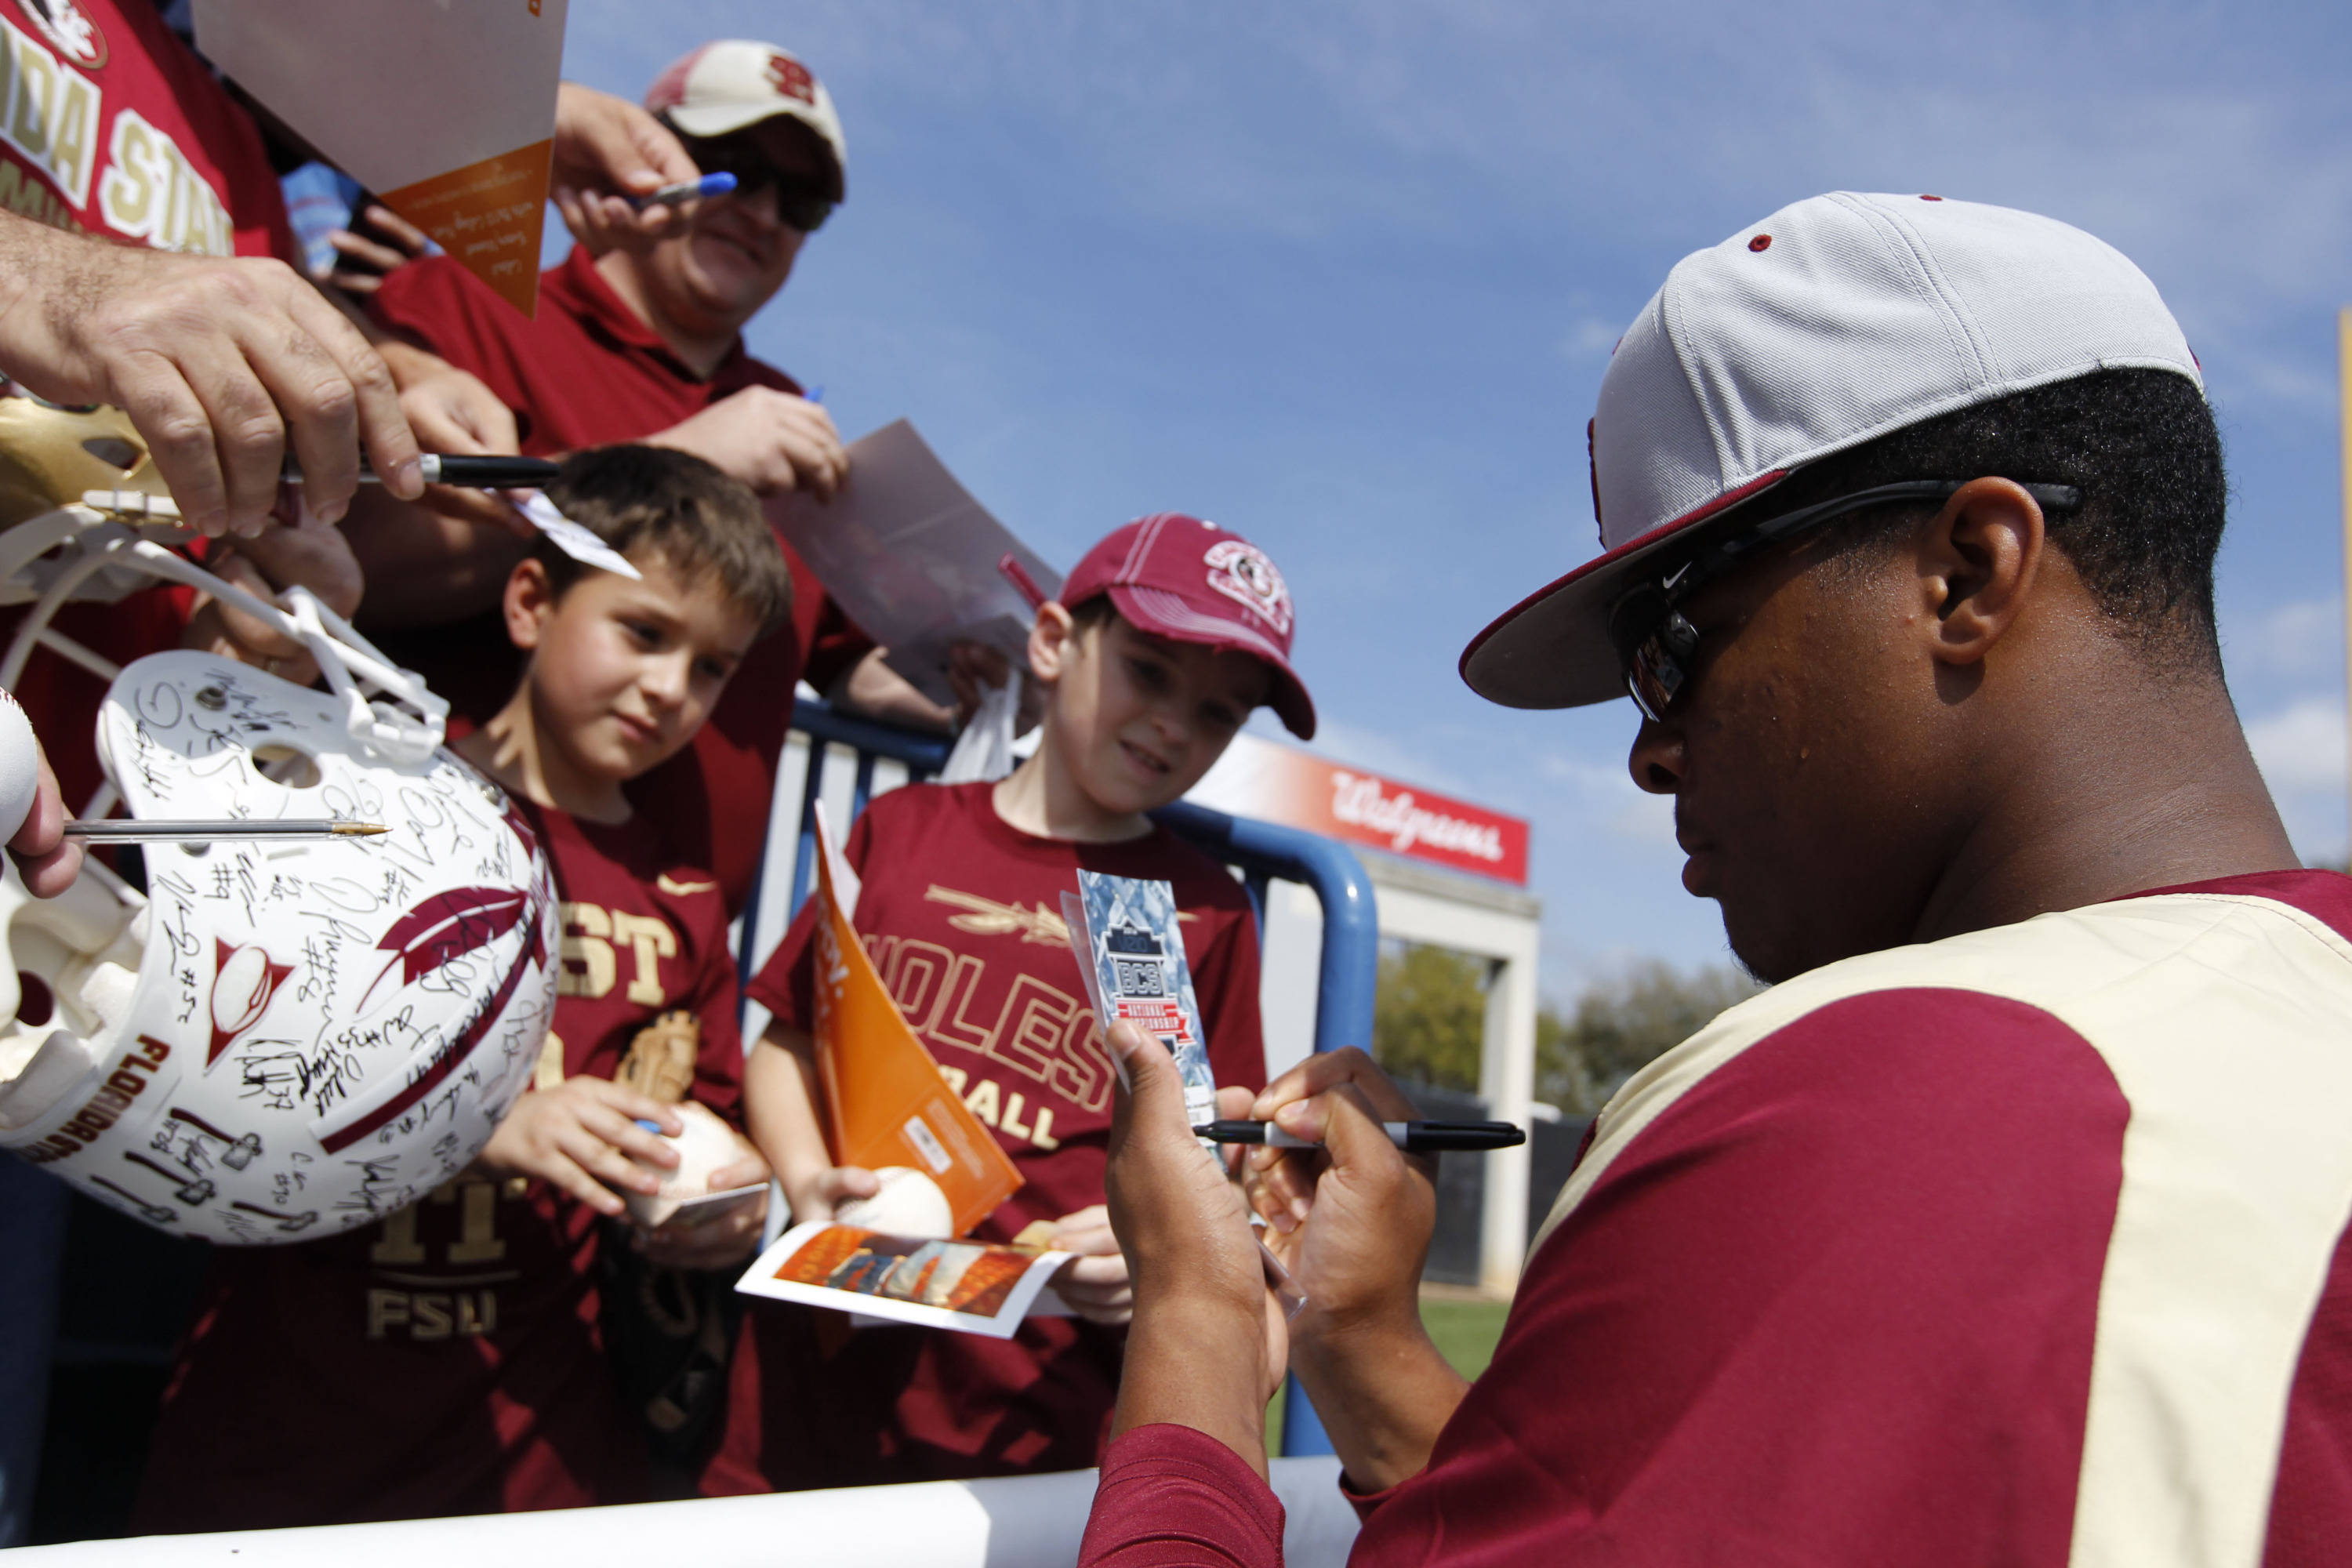 Feb 25, 2014; Tampa, FL, USA; Florida State Seminoles pitcher/outfielder Jameis Winston (44) signs autographs prior to the game against the New York Yankees at George M. Steinbrenner Field. Mandatory Credit: Kim Klement-USA TODAY Sports